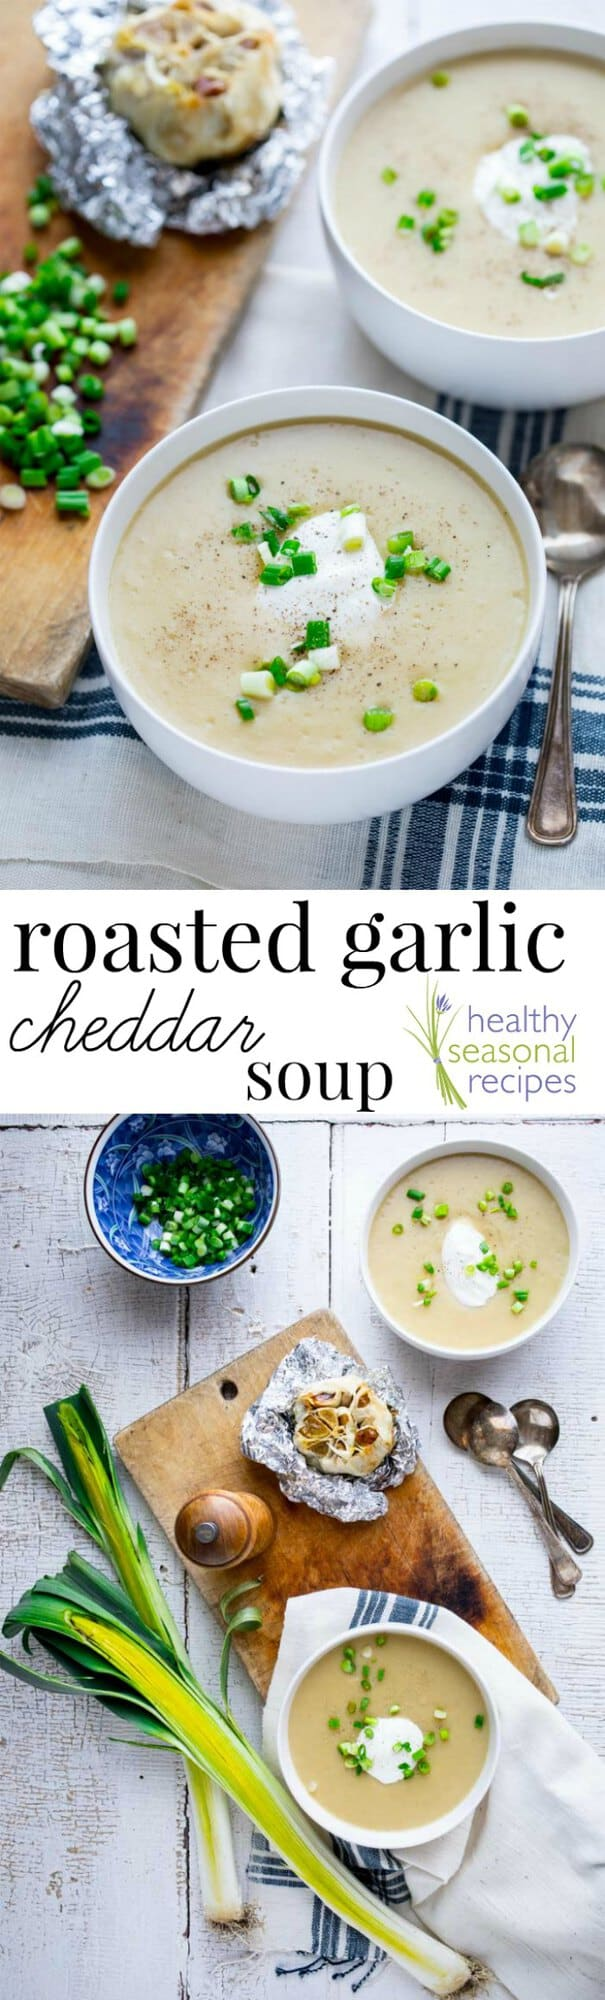 how to make roasted garlic cheddar